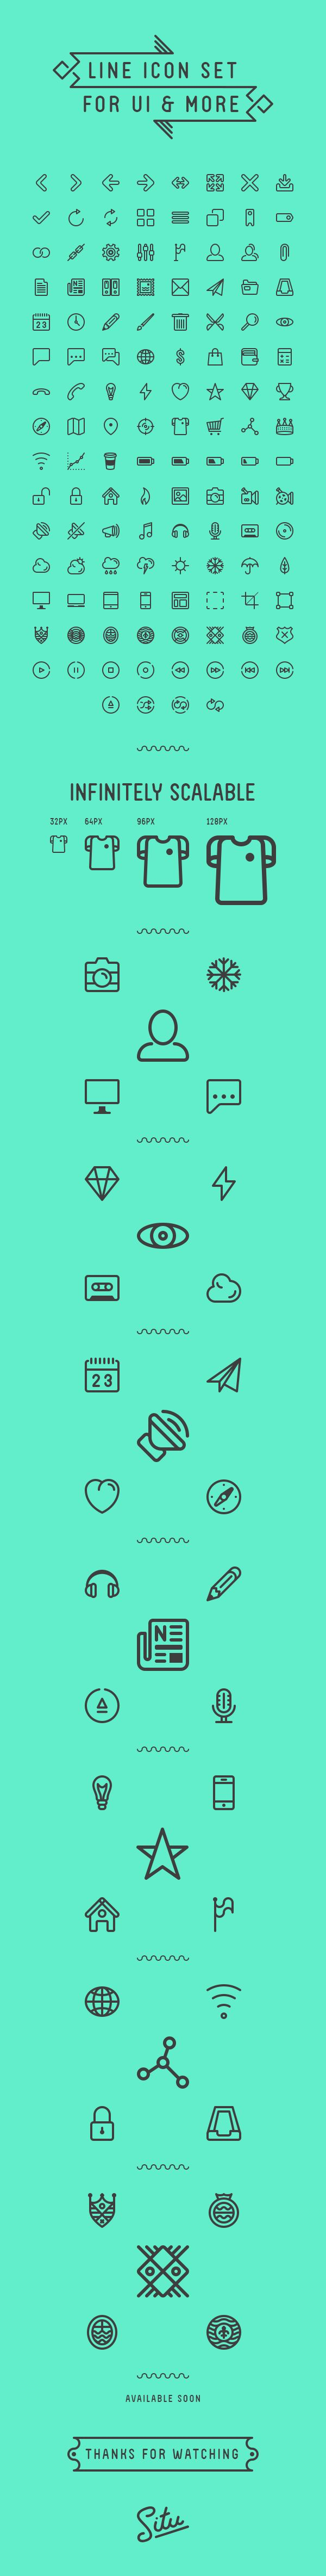 Line icon set for UI & more // Infinitely scalable by Situ Herrera, via Behance